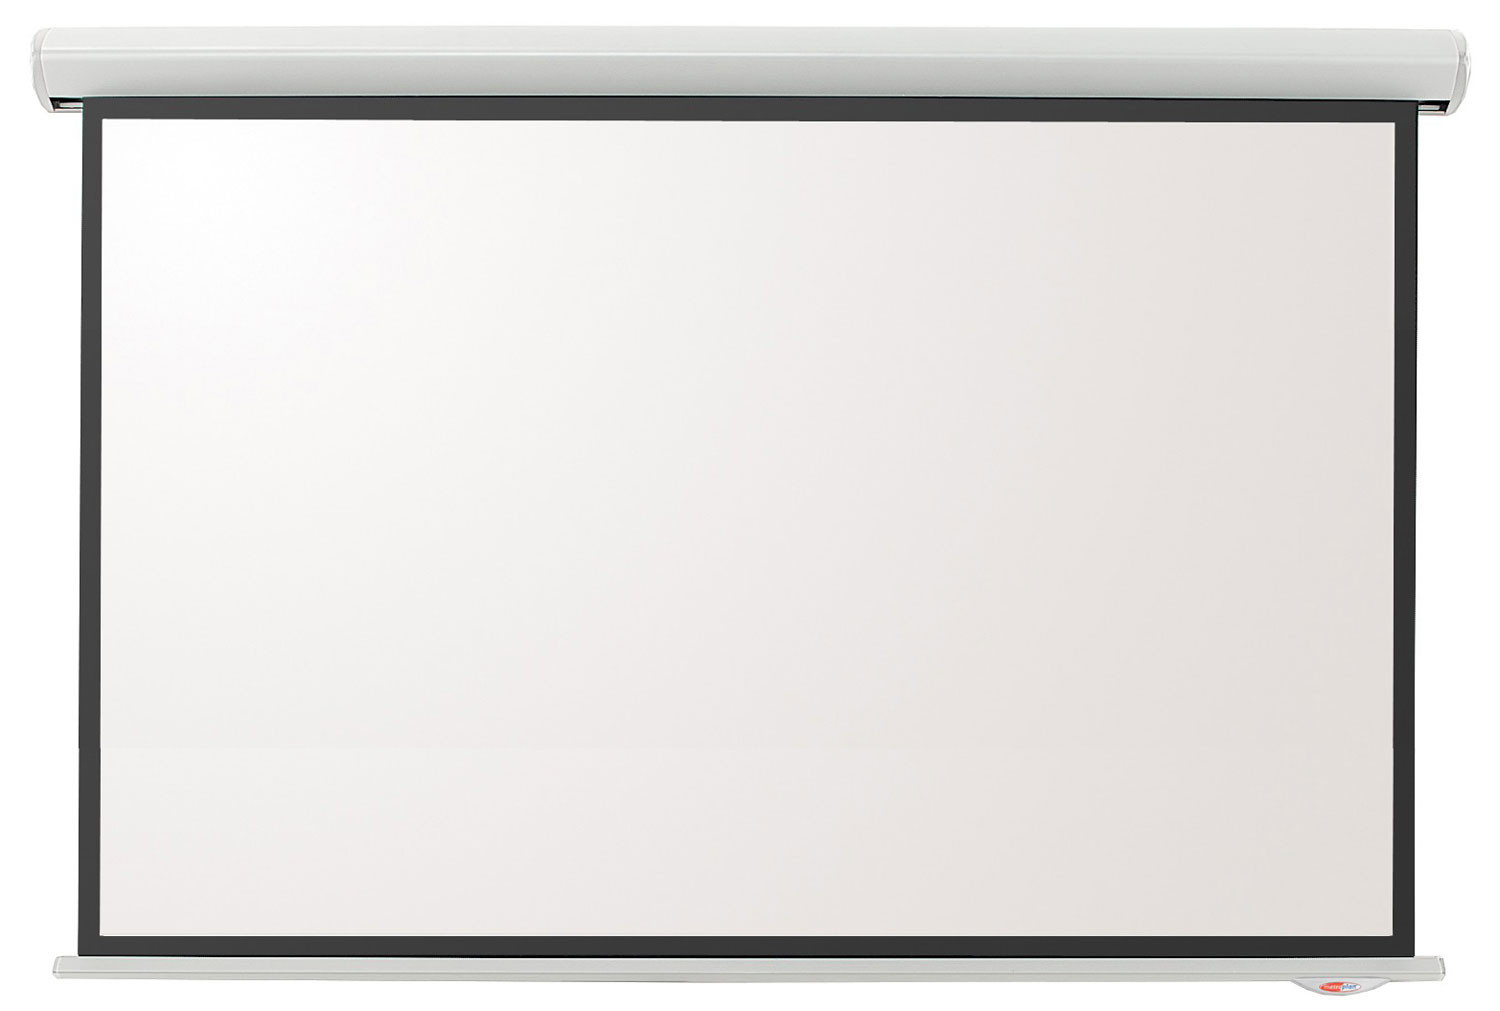 Eyeline Design Electric Projection Screen